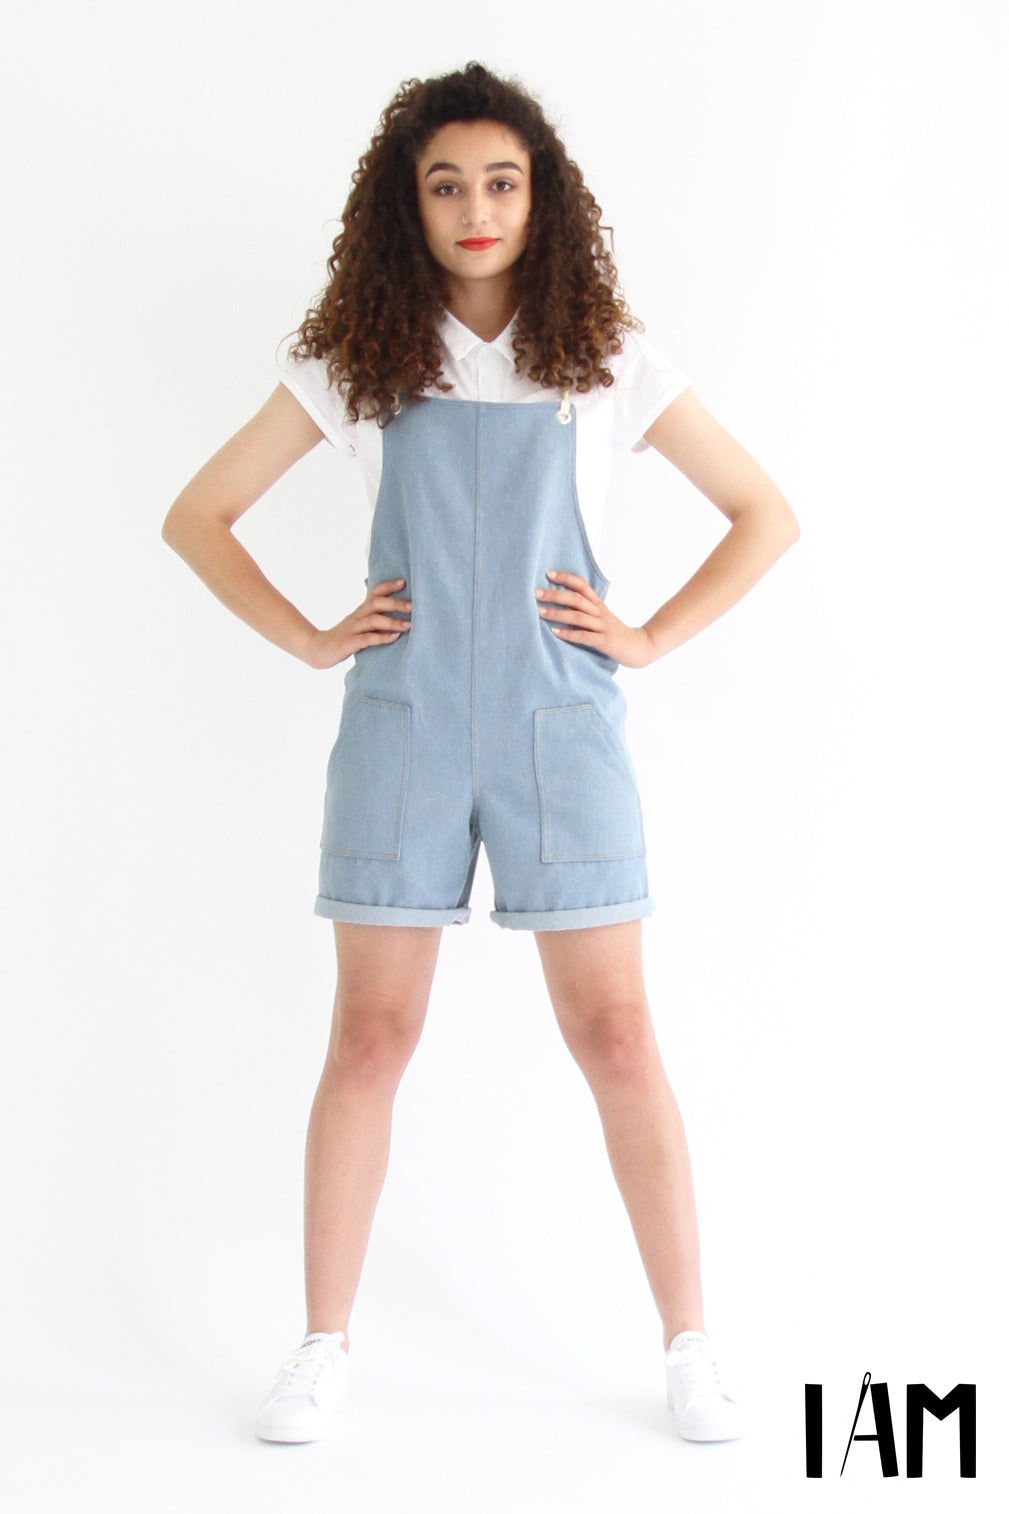 I AM - Colibri Overall / Dungarees Sewing Pattern